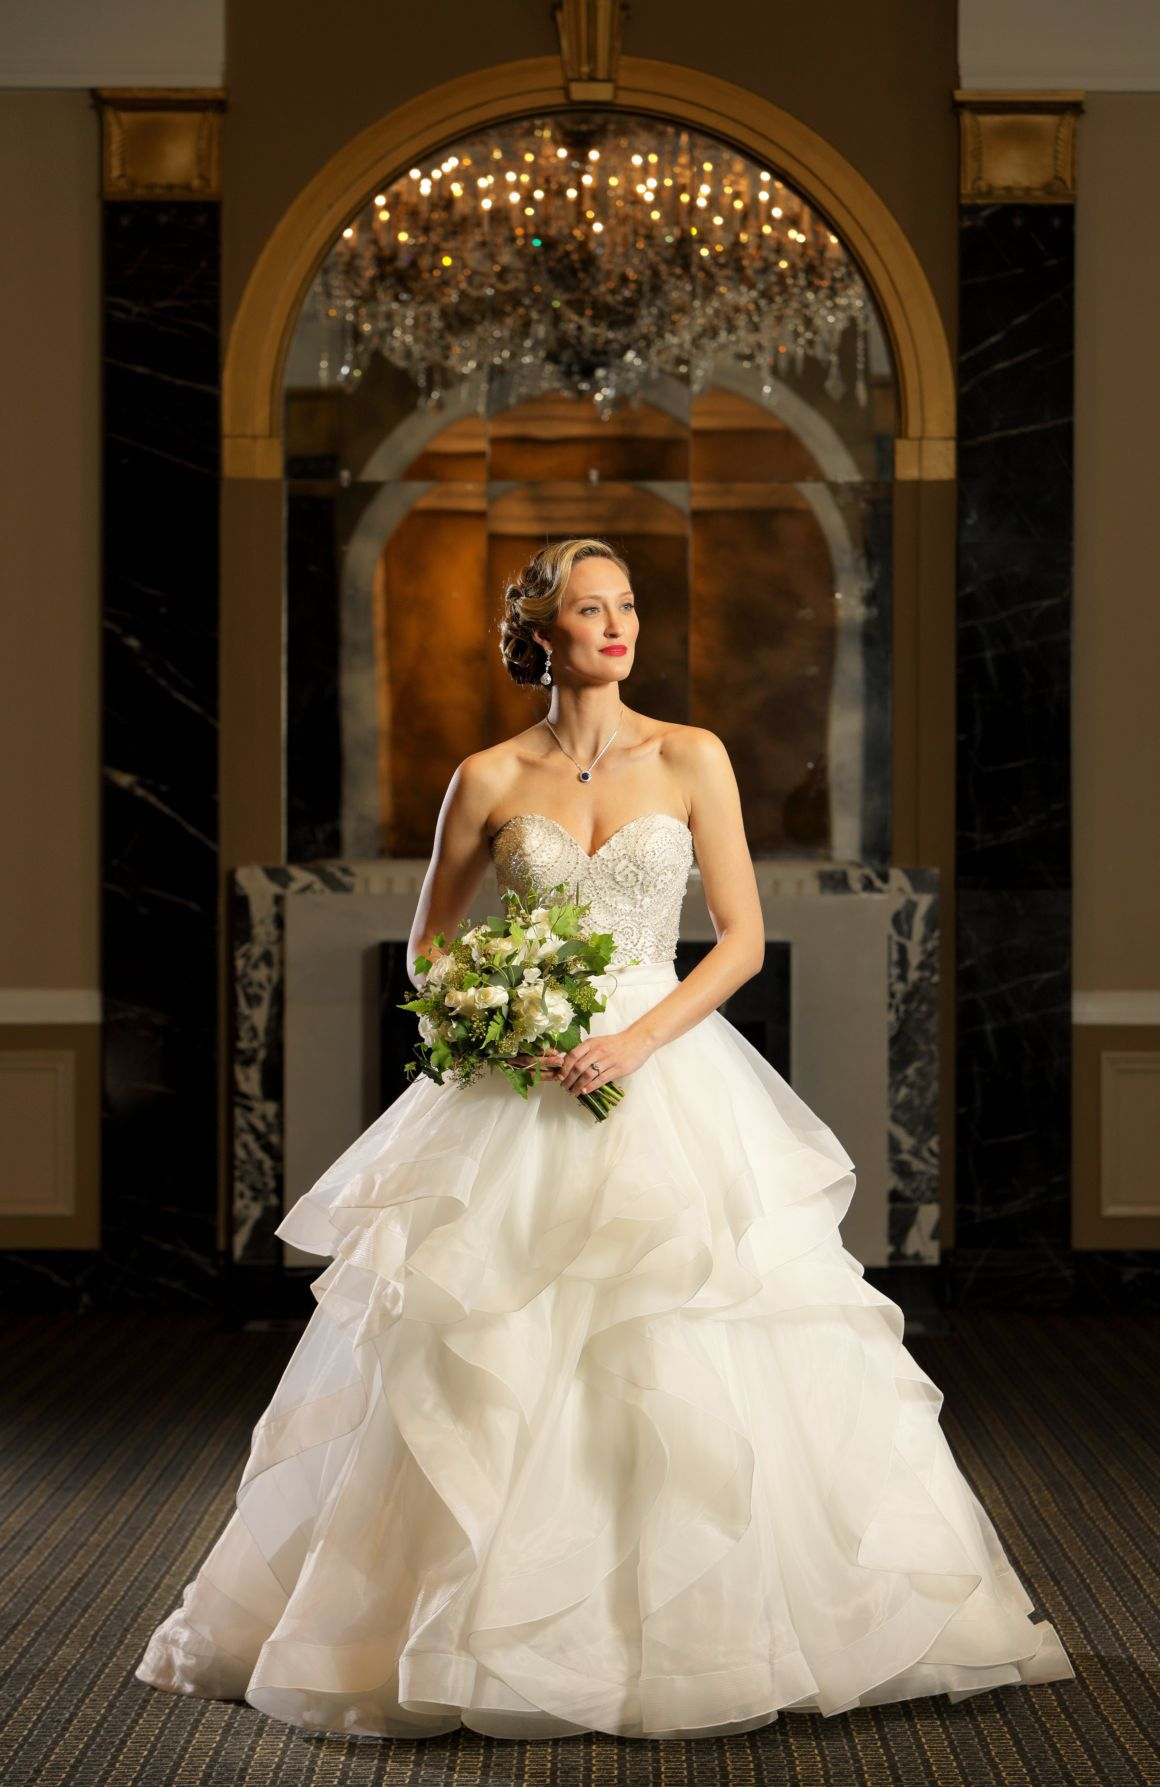 Sheer illusion bridal gowns flirt with modesty embellishments sheer illusion bridal gowns flirt with modesty embellishments debs retail details stltoday ombrellifo Images